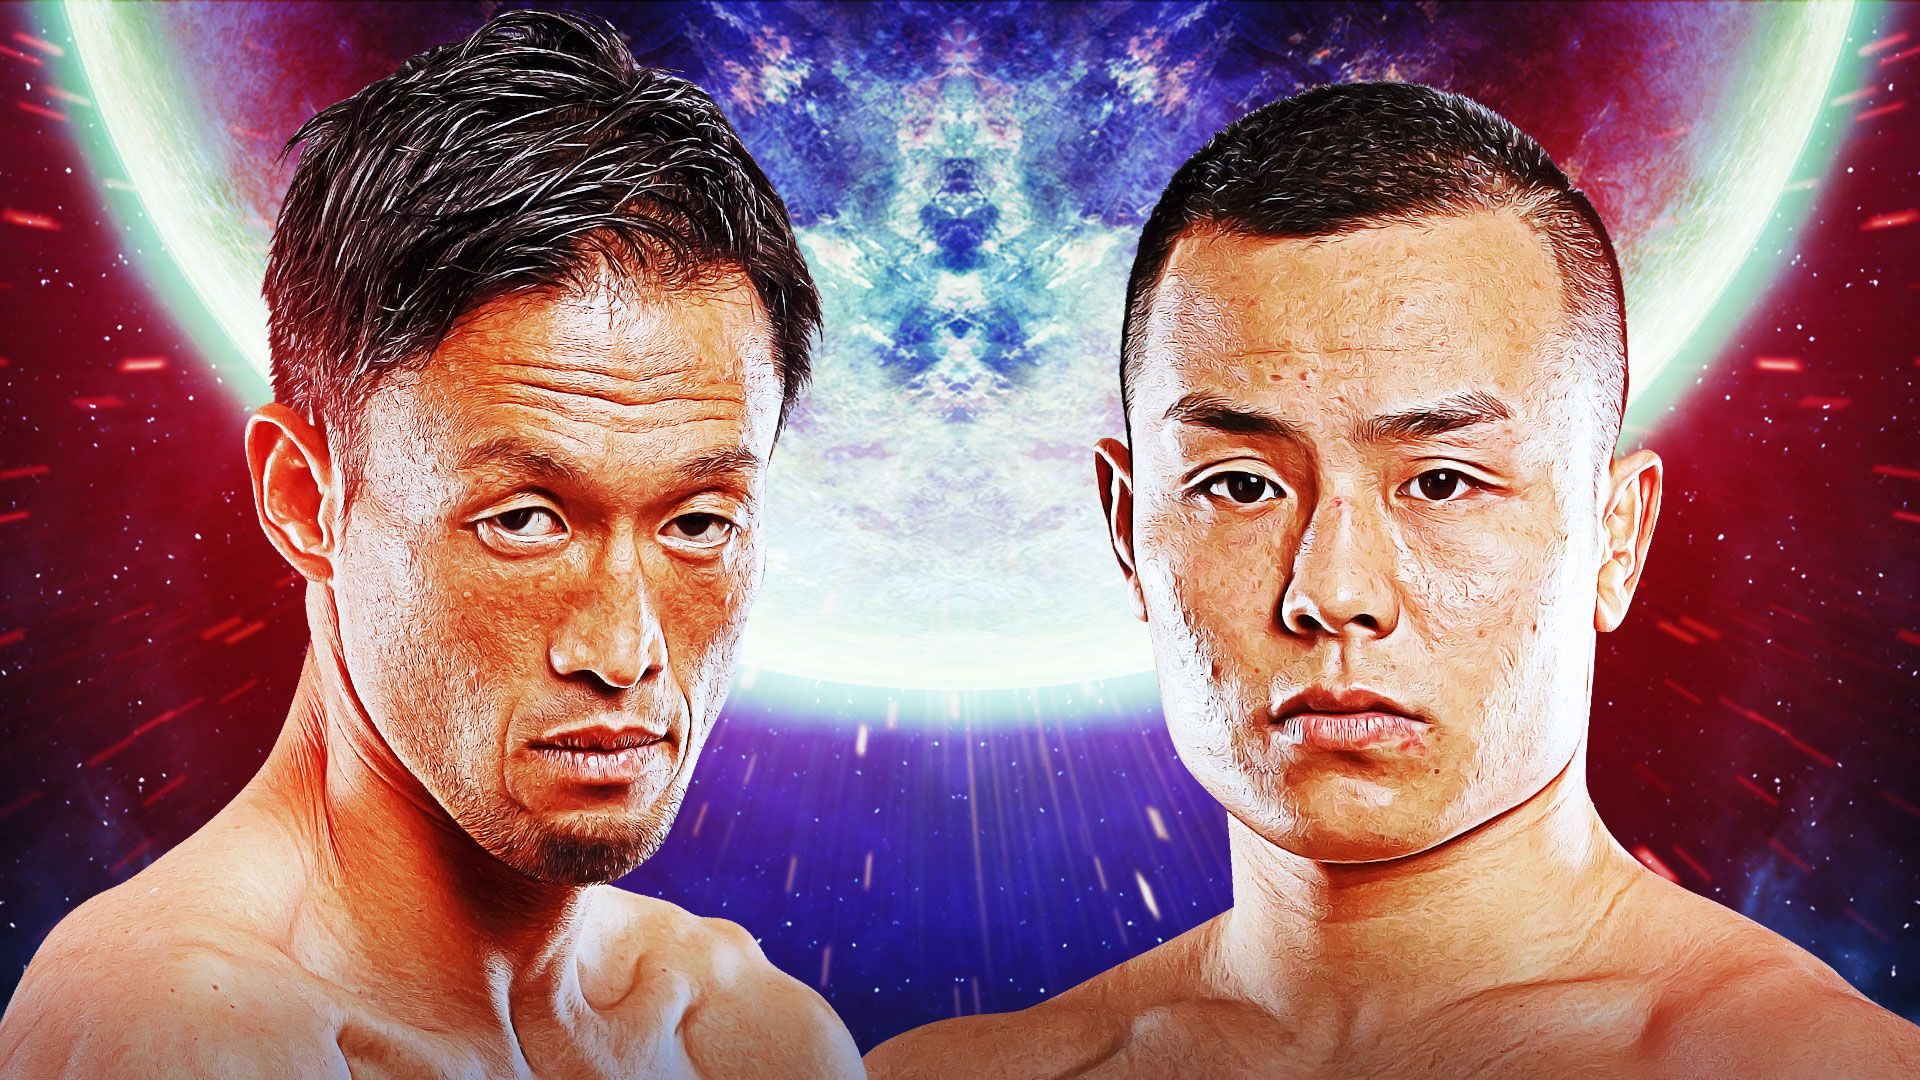 MMA stars Senzo Ikeda and Liang Hui fight at ONE: COLLISION COURSE II